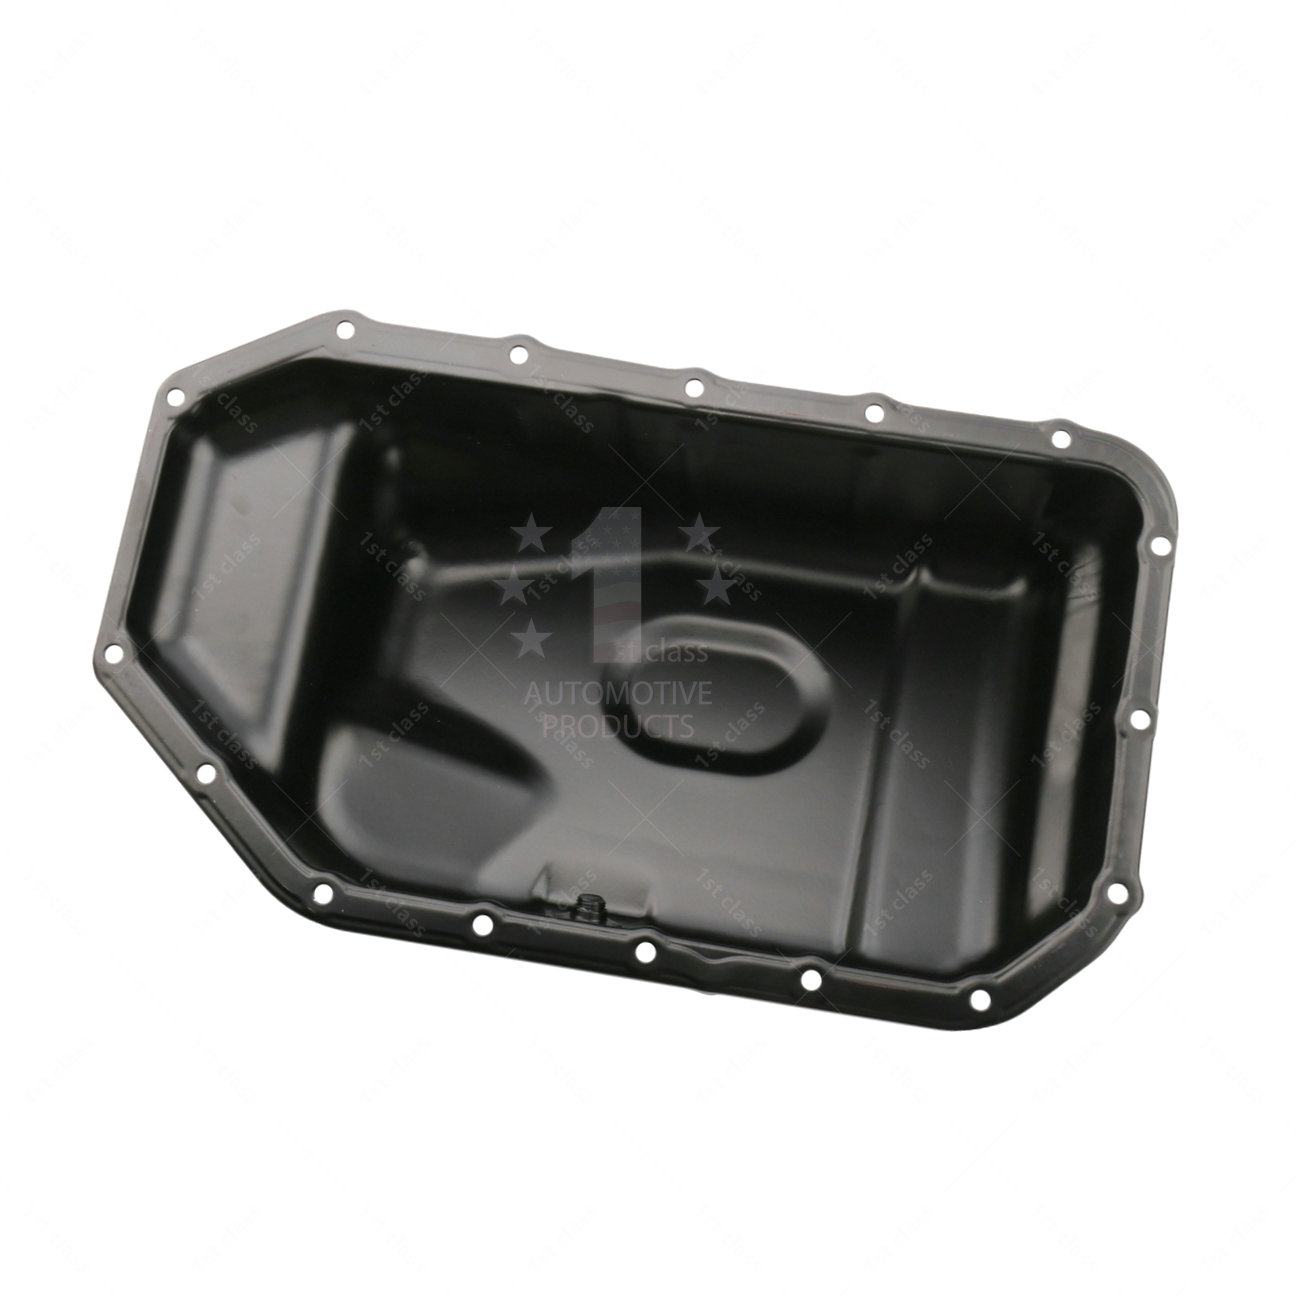 New Oil Pan Acura TL For Honda Pilot MDX CL 2001-2003